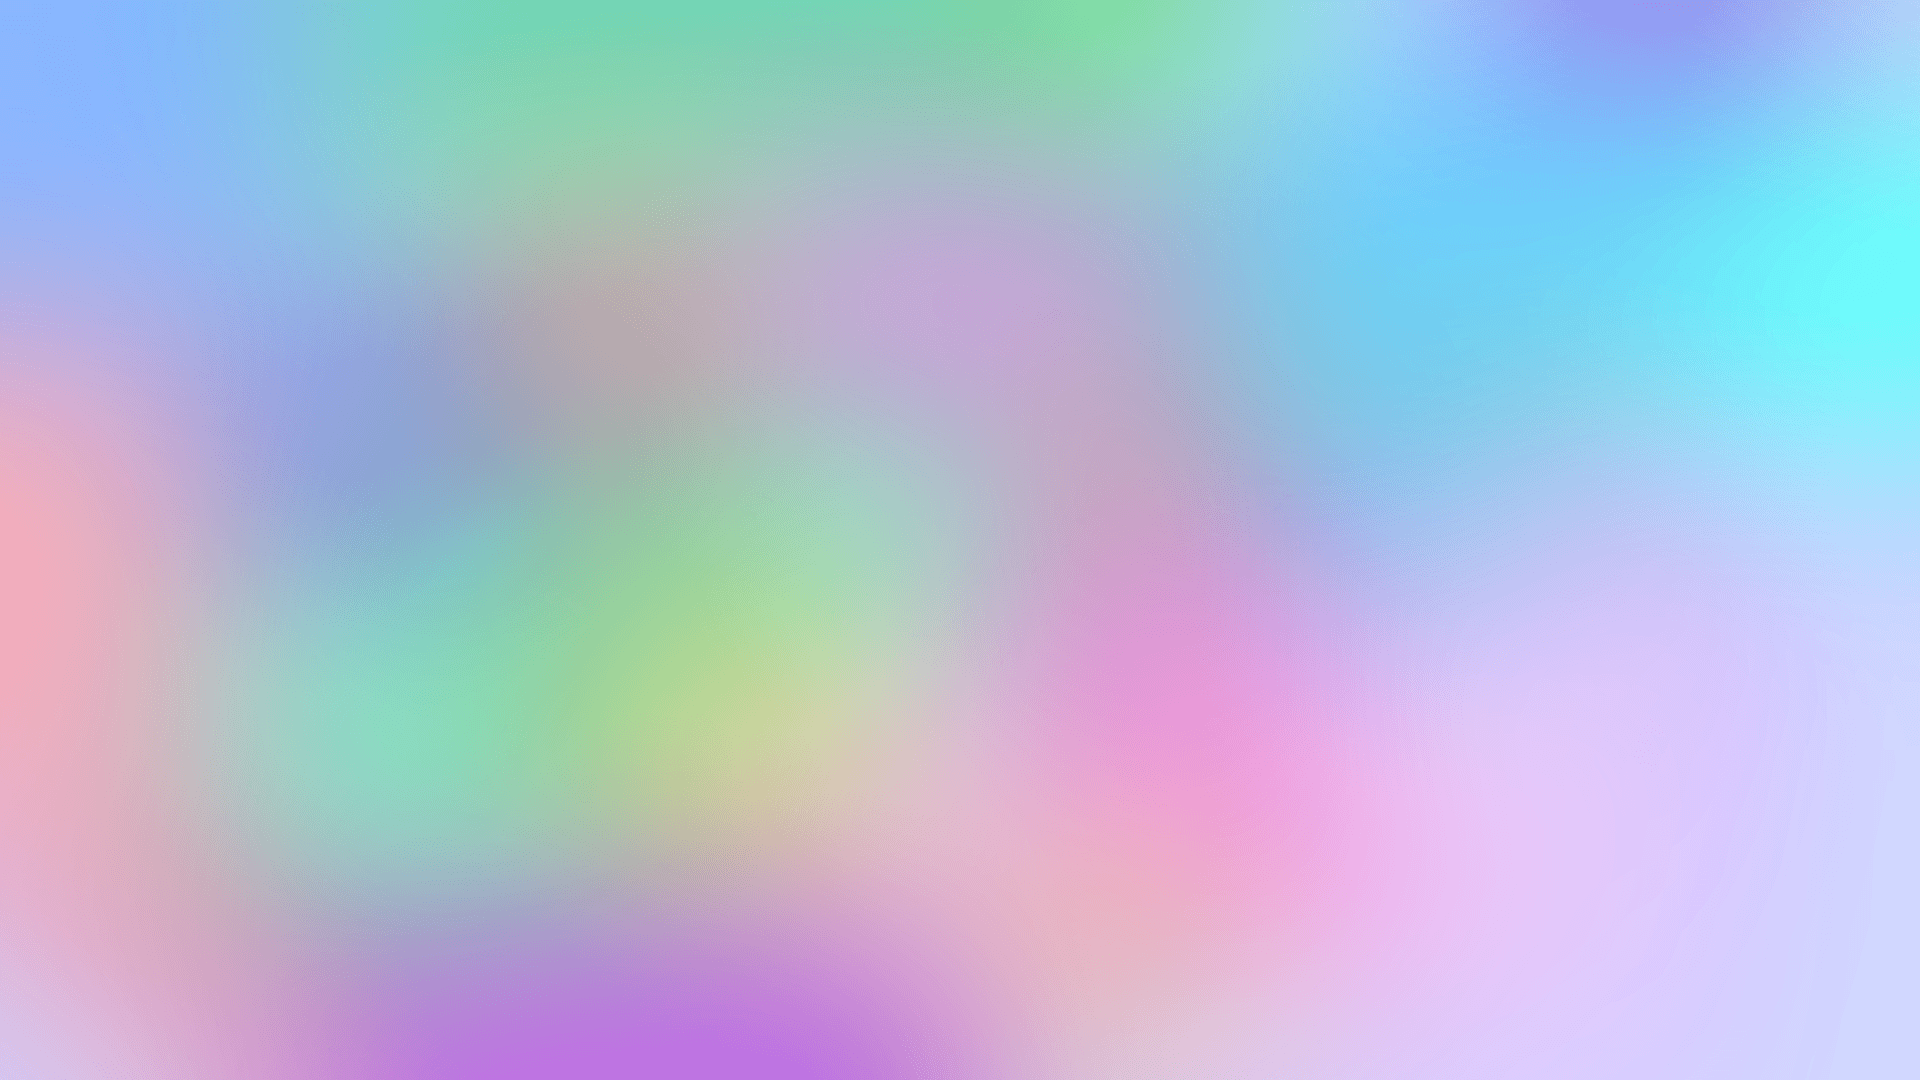 Pastel Colors Wallpapers 1920x1080